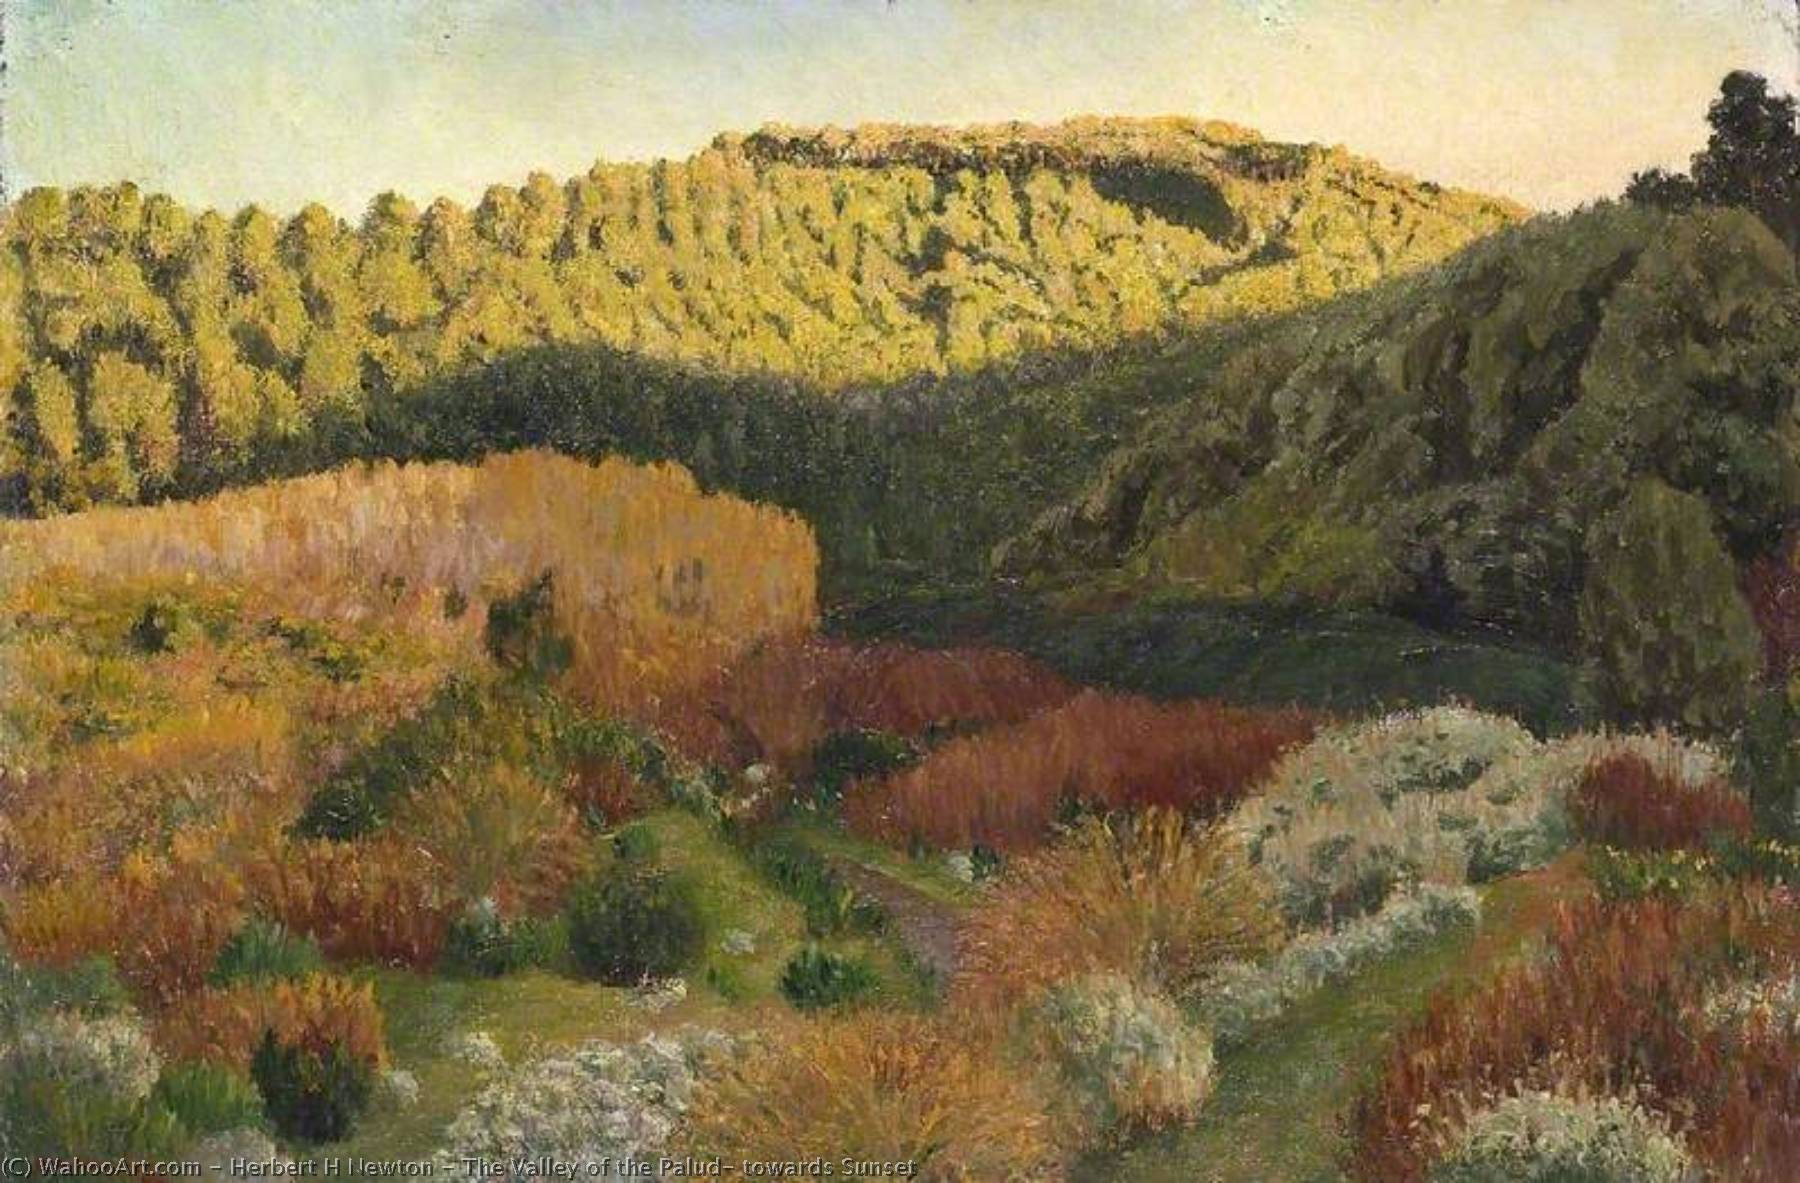 famous painting The Valley of the Palud, towards Sunset of Herbert H Newton